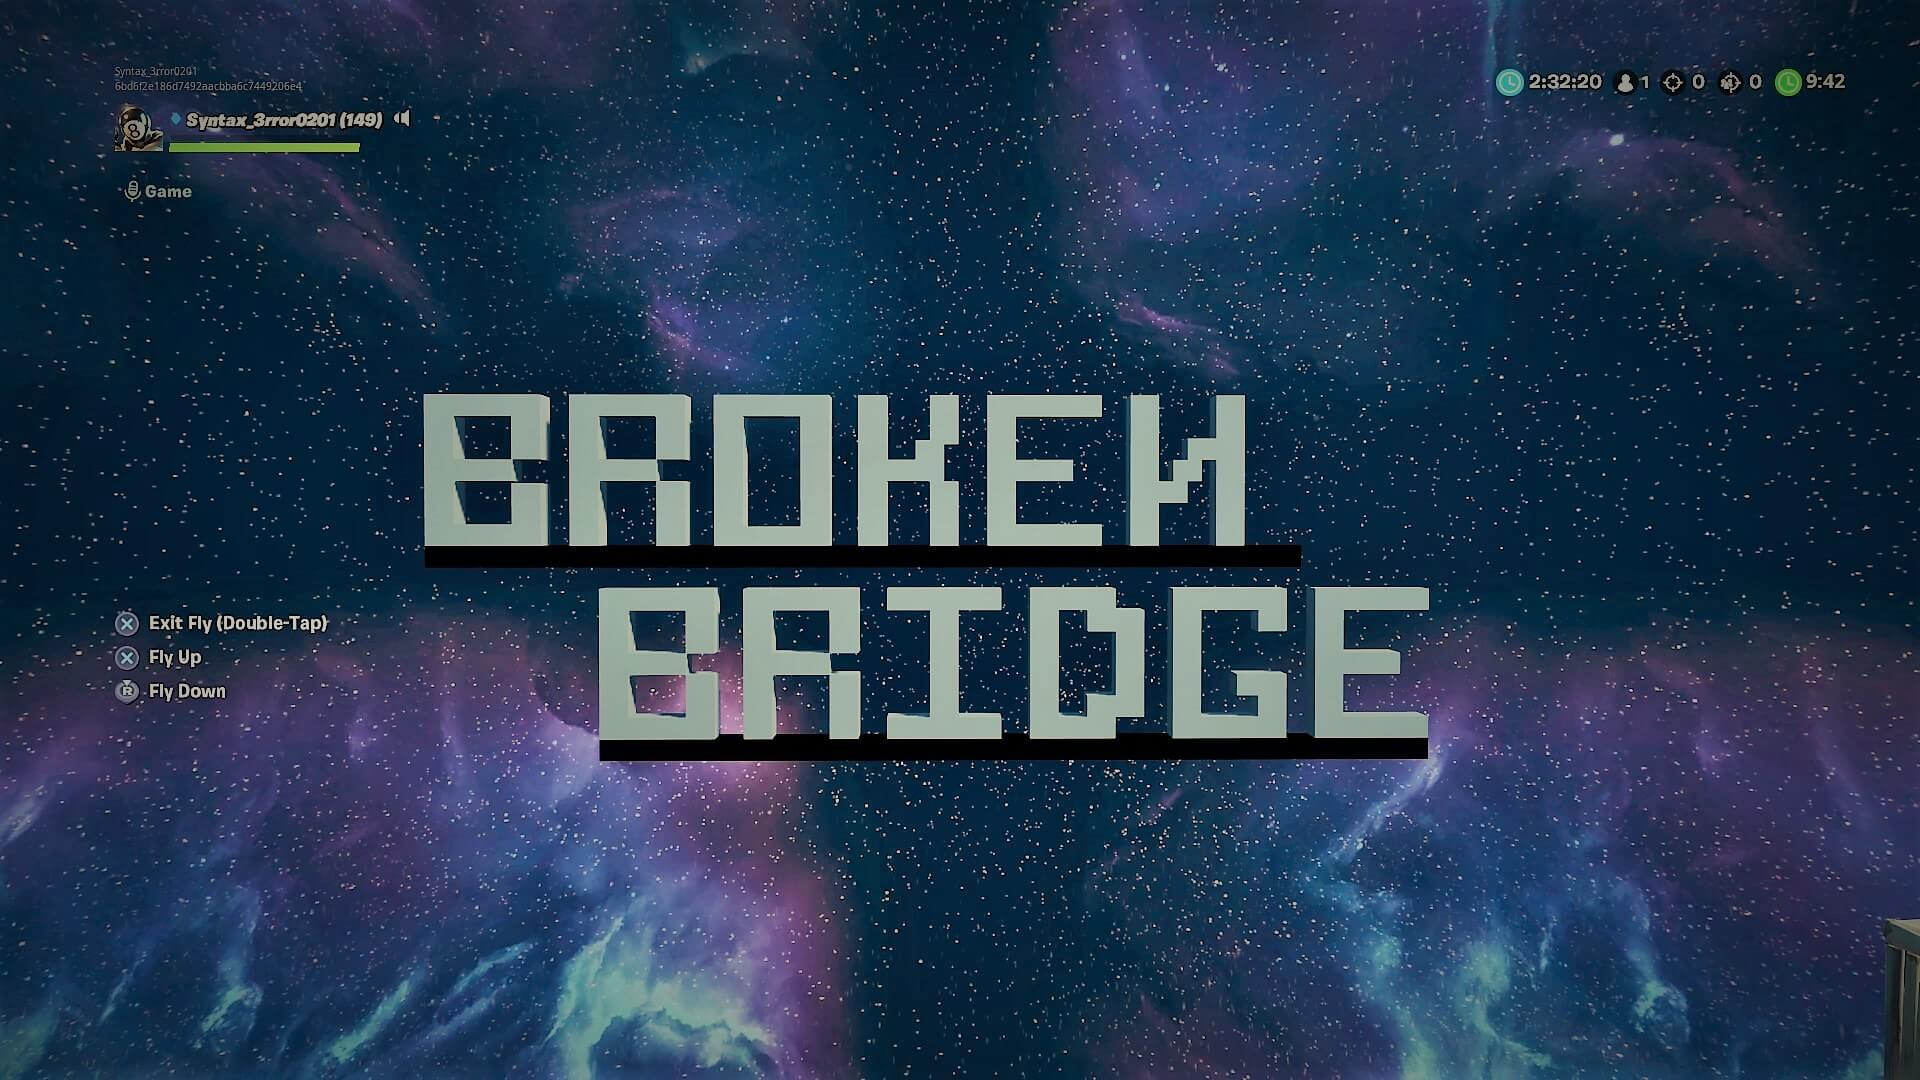 BROKEN BRIDGE INFECTED